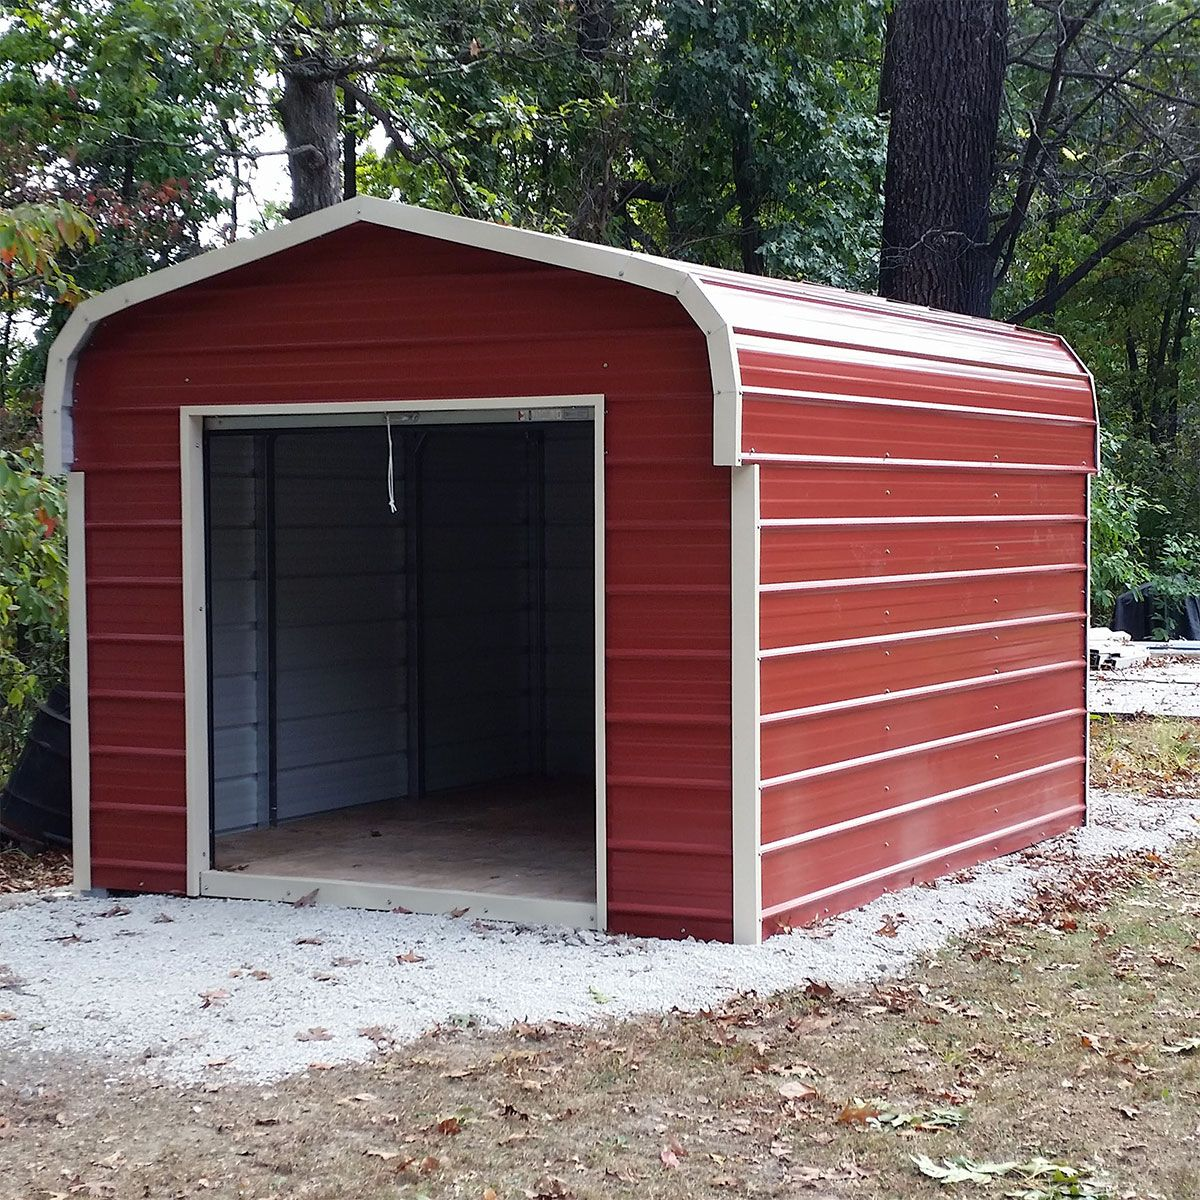 Duramax 10x12 Del Mar Colossus Metal Shed Foundation Brown Trim Duramax Sheds Shed Small Shed Plans